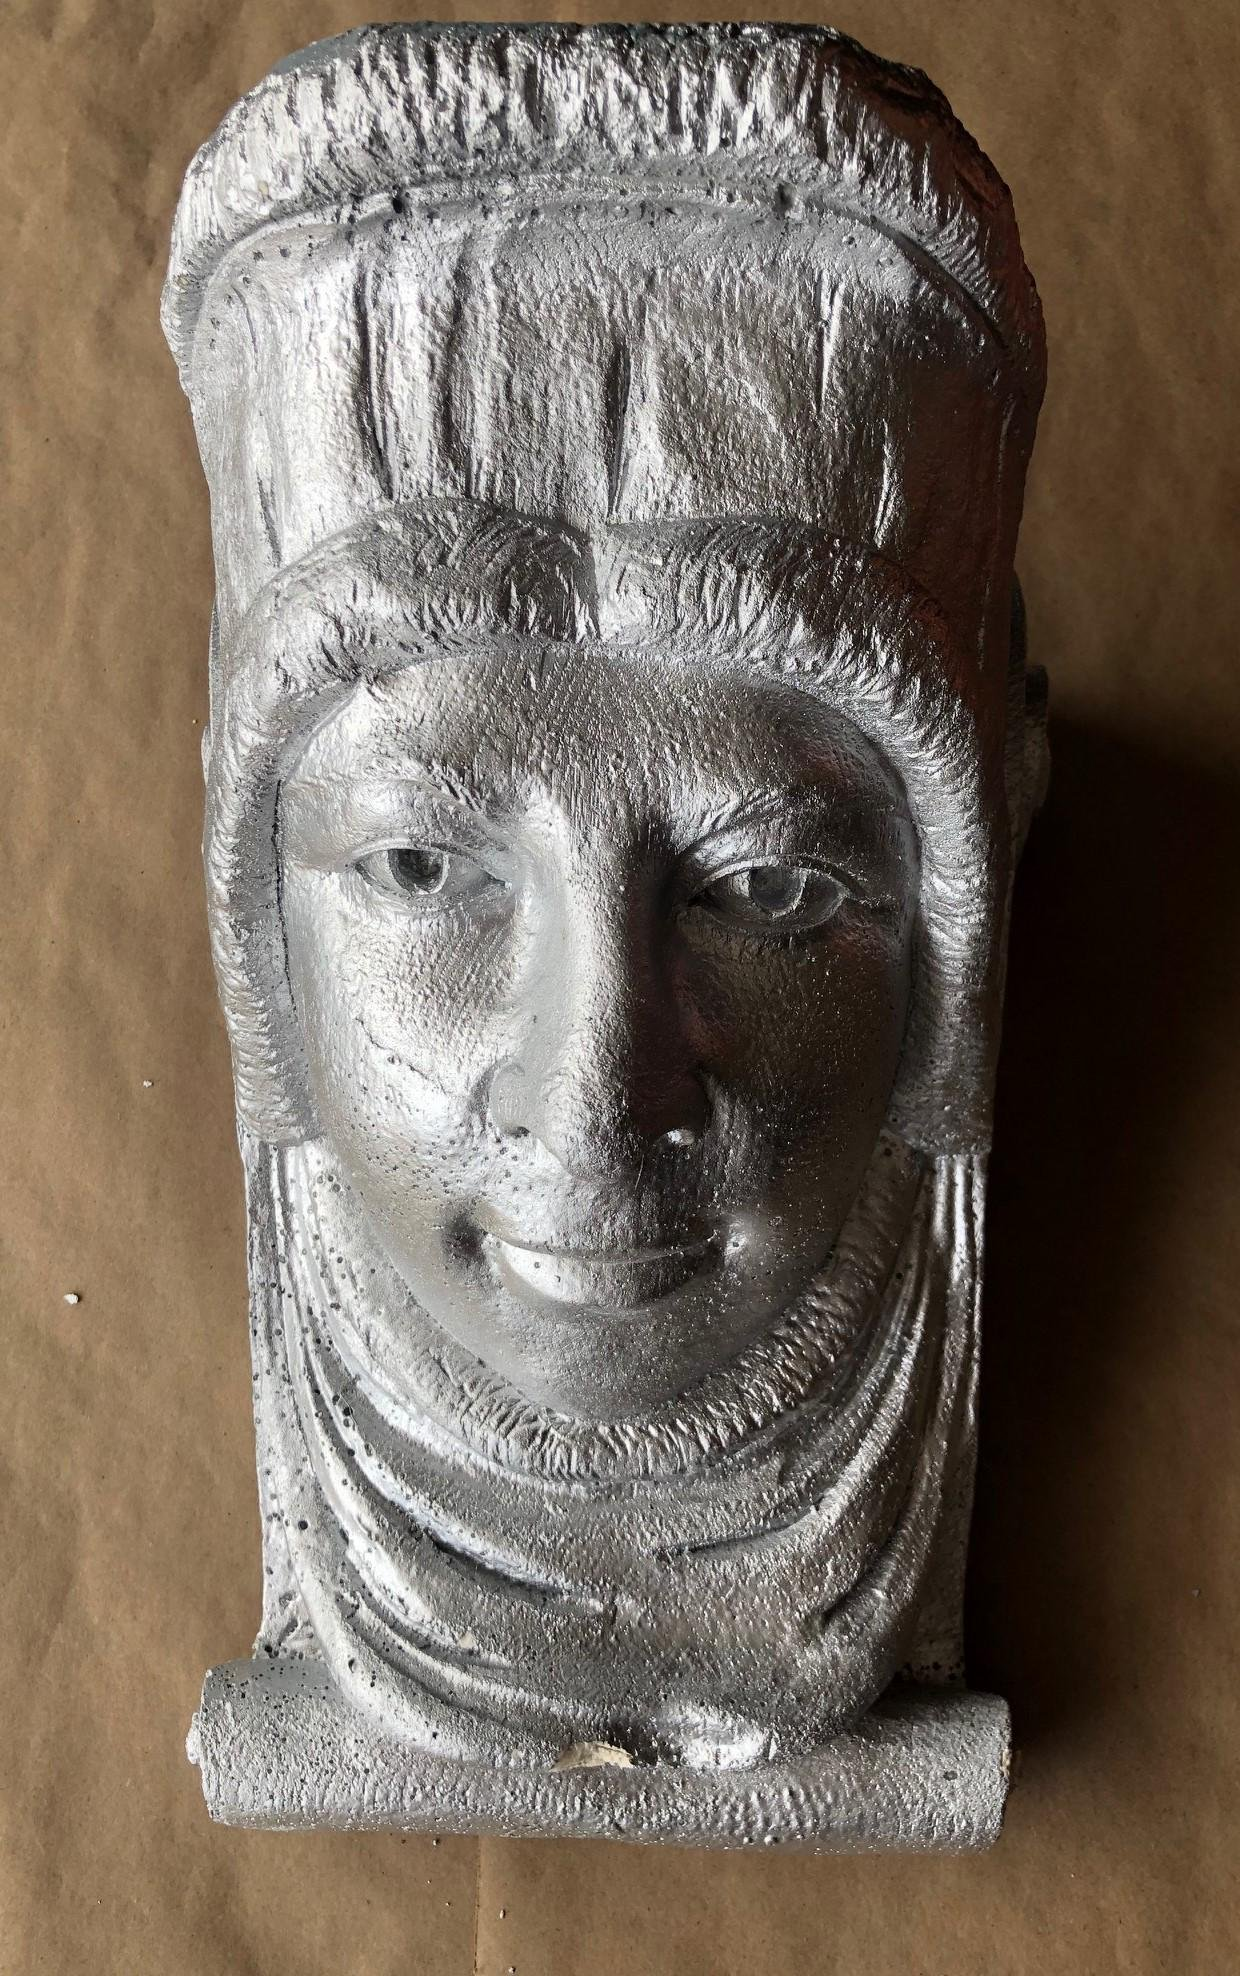 Cast corbel in the form of a head from a Cincinnati